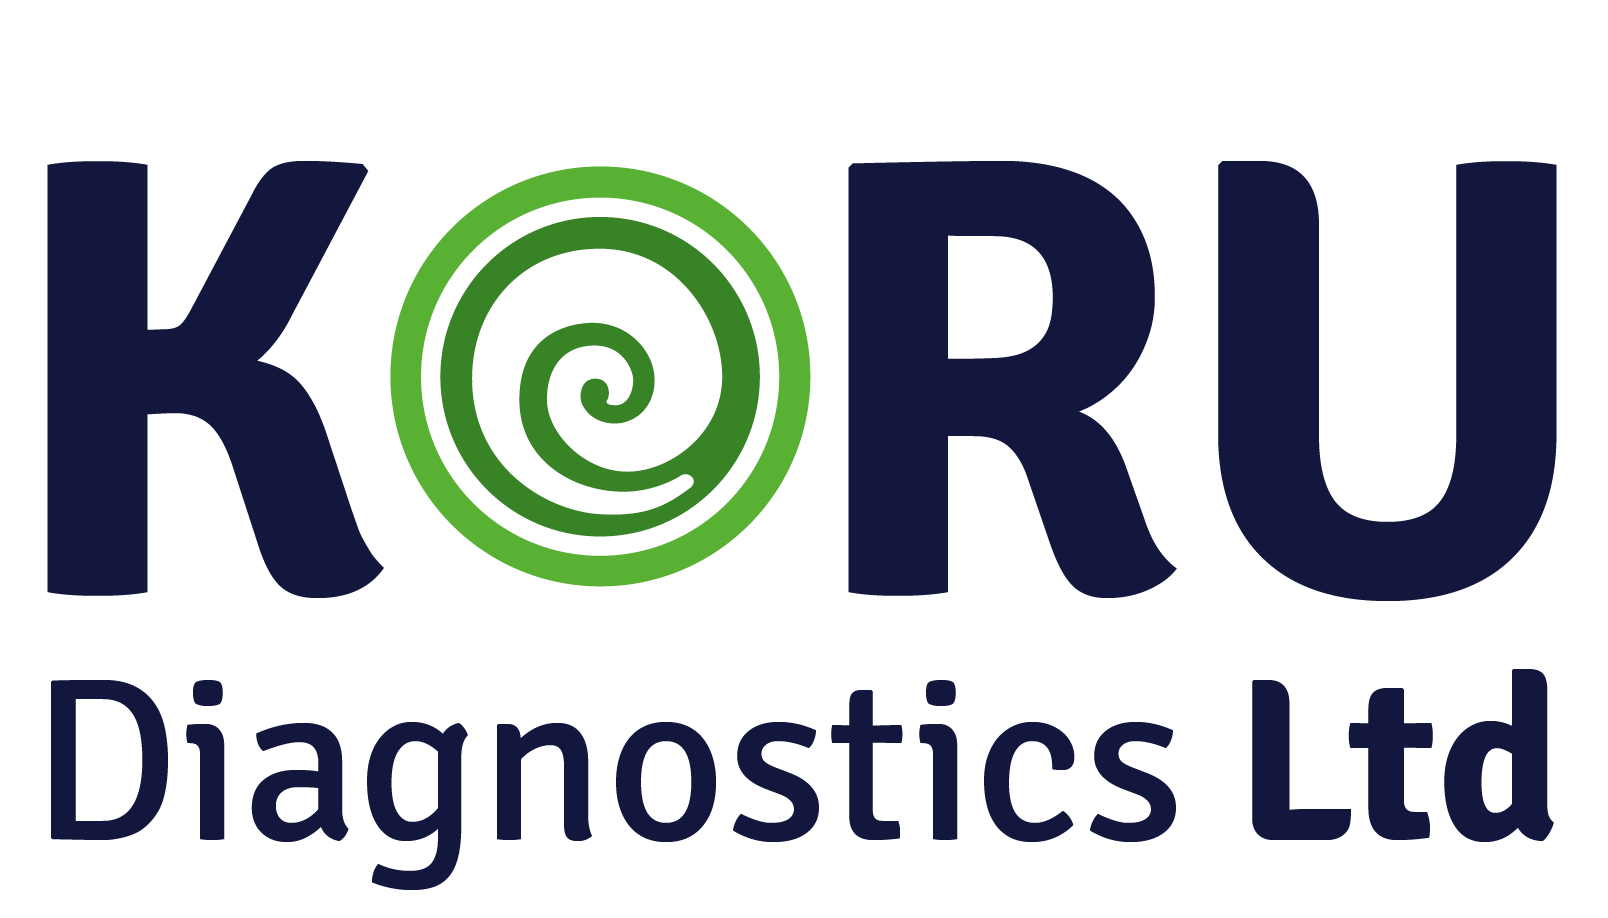 Sprout - Koru Diagnostics.png